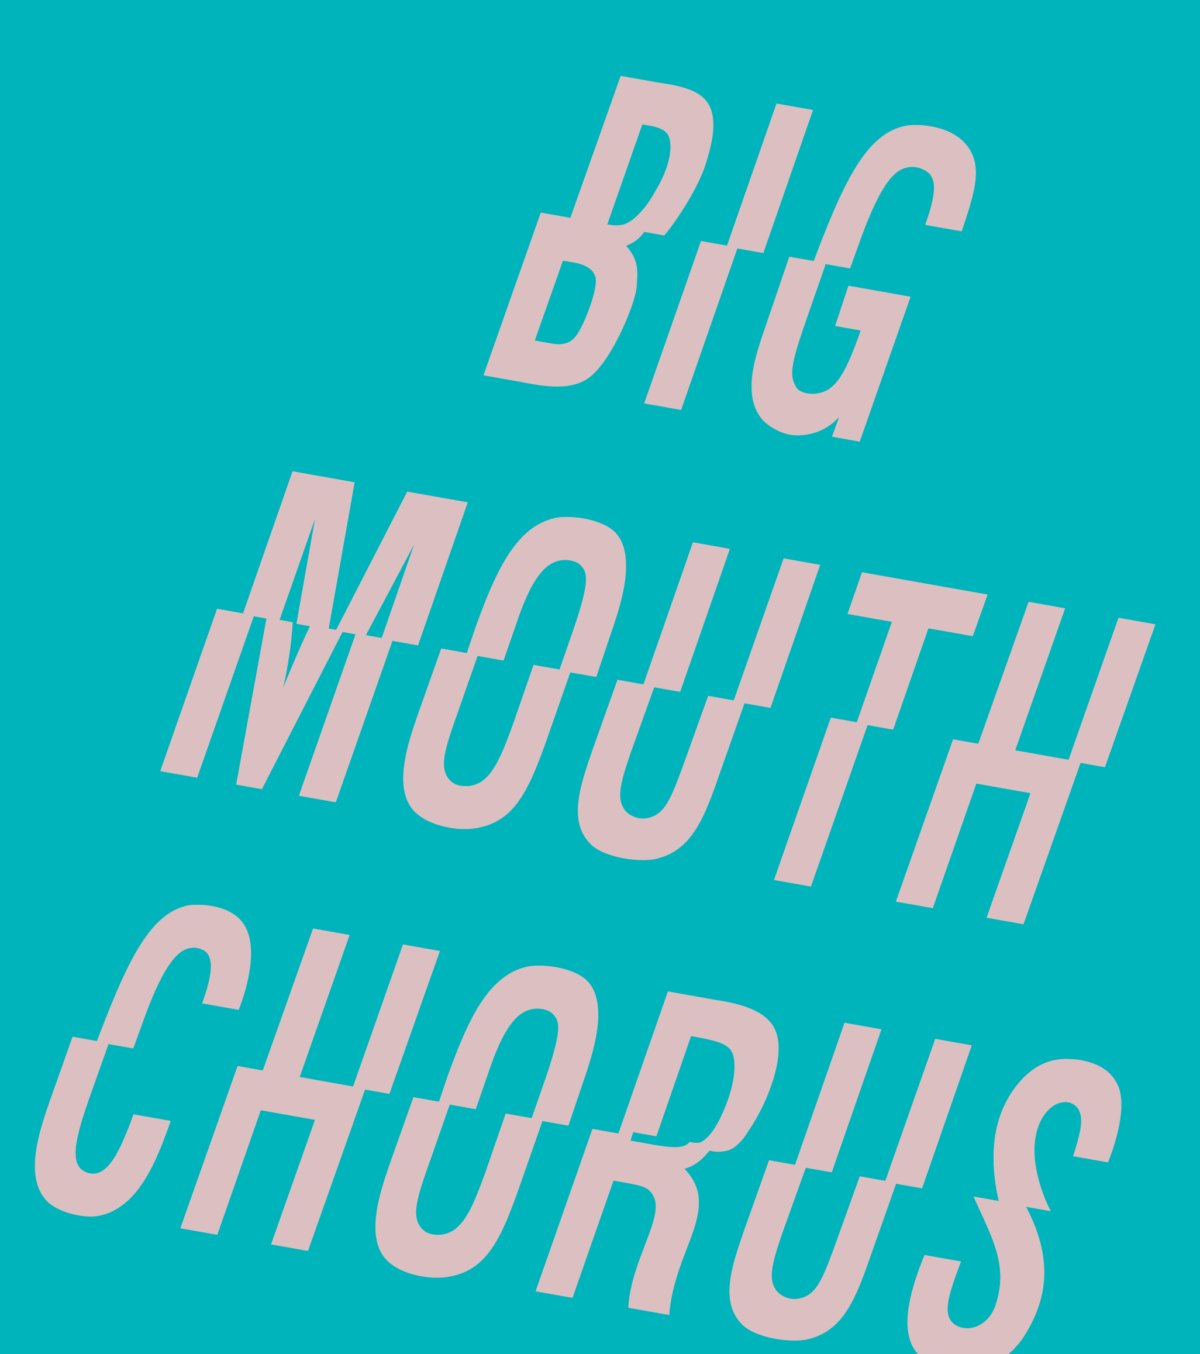 Bigmouth Chorus Performance Dates!